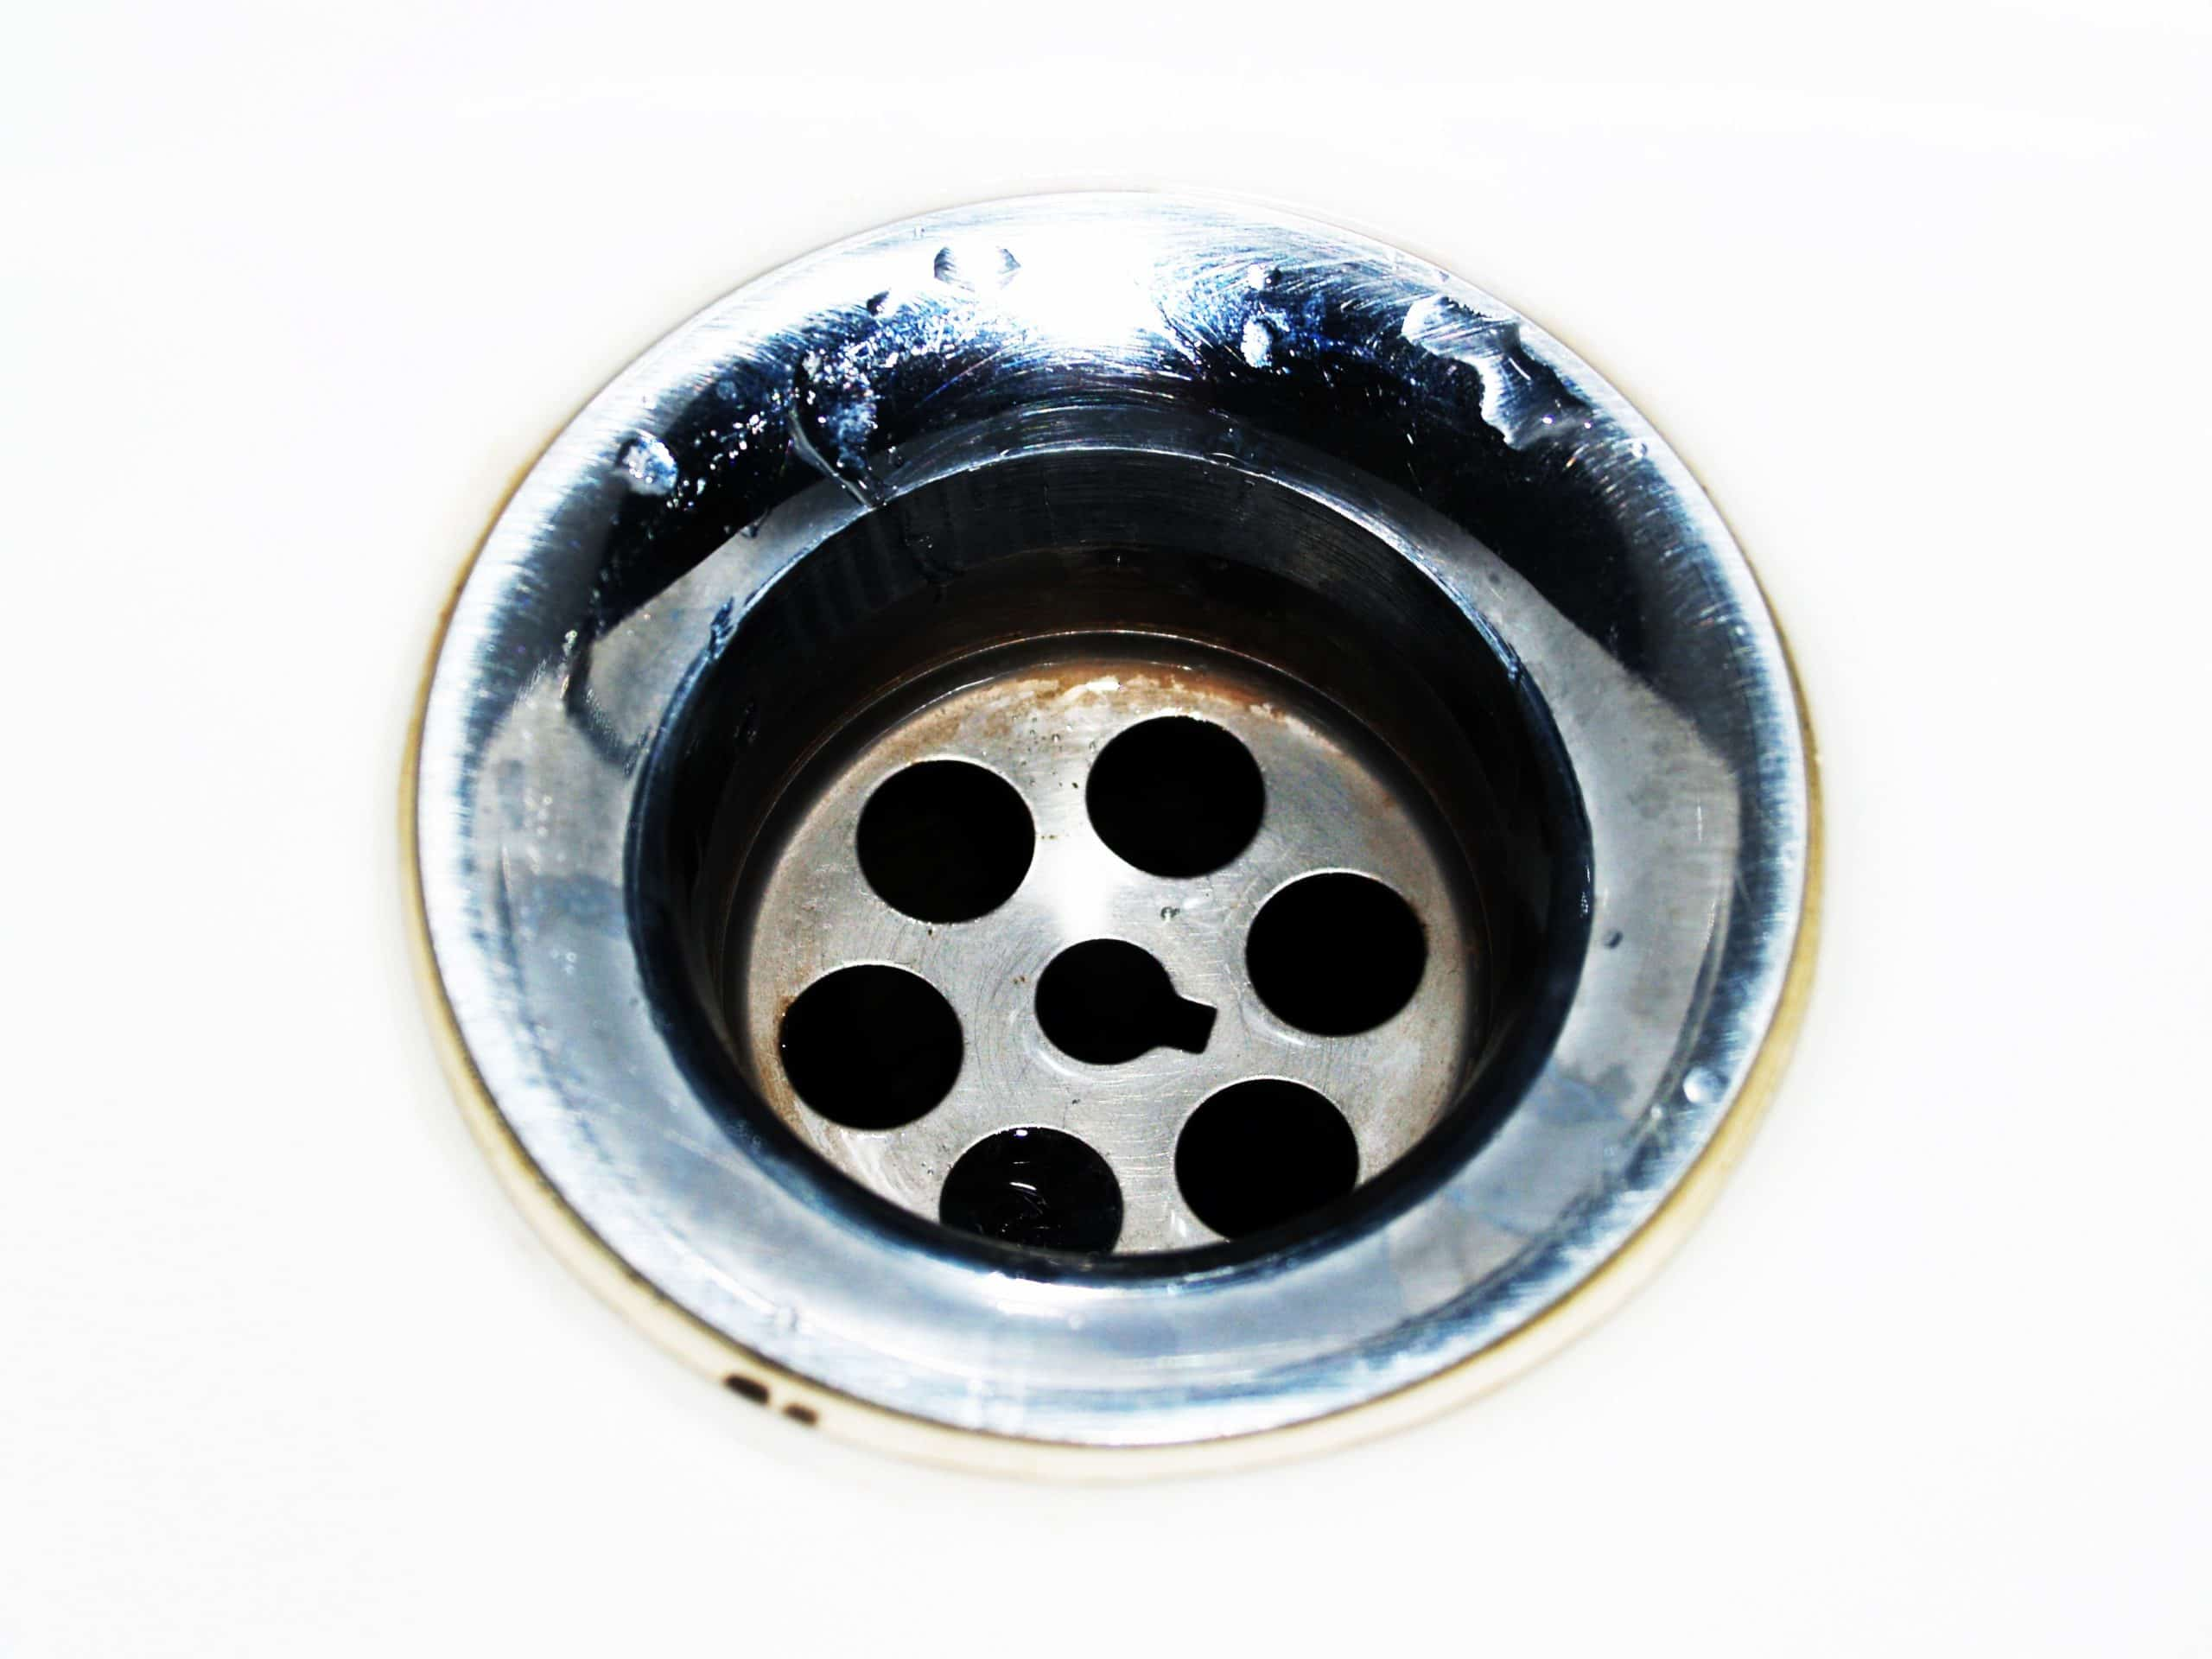 How do I fix the problem of a drain smell in my house?